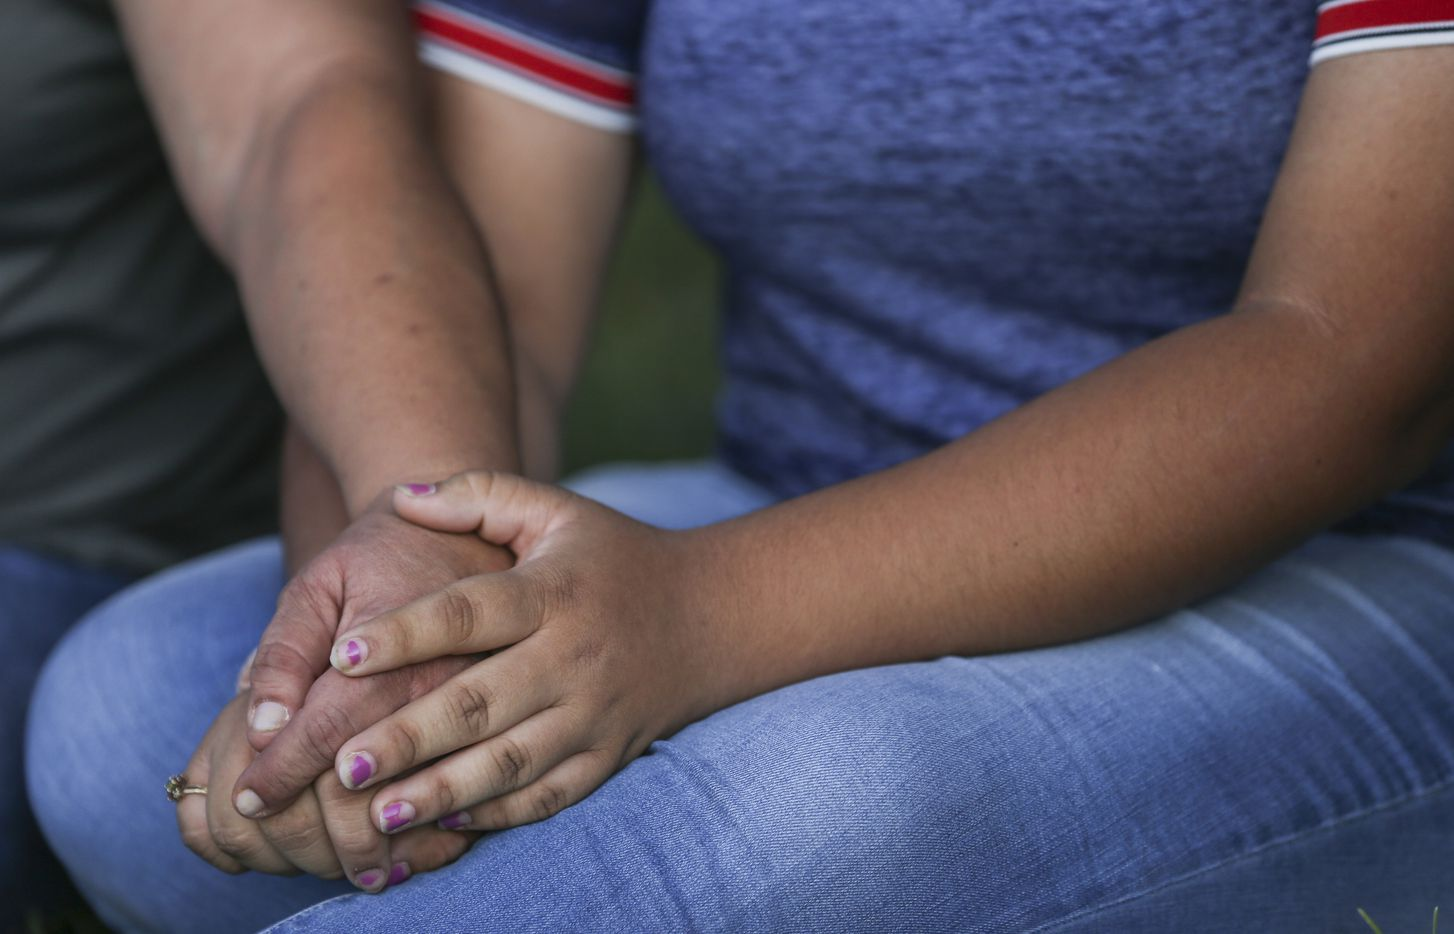 Christina Lopez, left, reaches over to comfort her daughter, Celia Lopez, 15, who was friends with Leilah Hernandez, a 15-year-old Odessa High sophomore killed in the attack, as community members gather for a prayer vigil at the University of Texas Permian Basin on Sunday, Sept. 1, 2019.